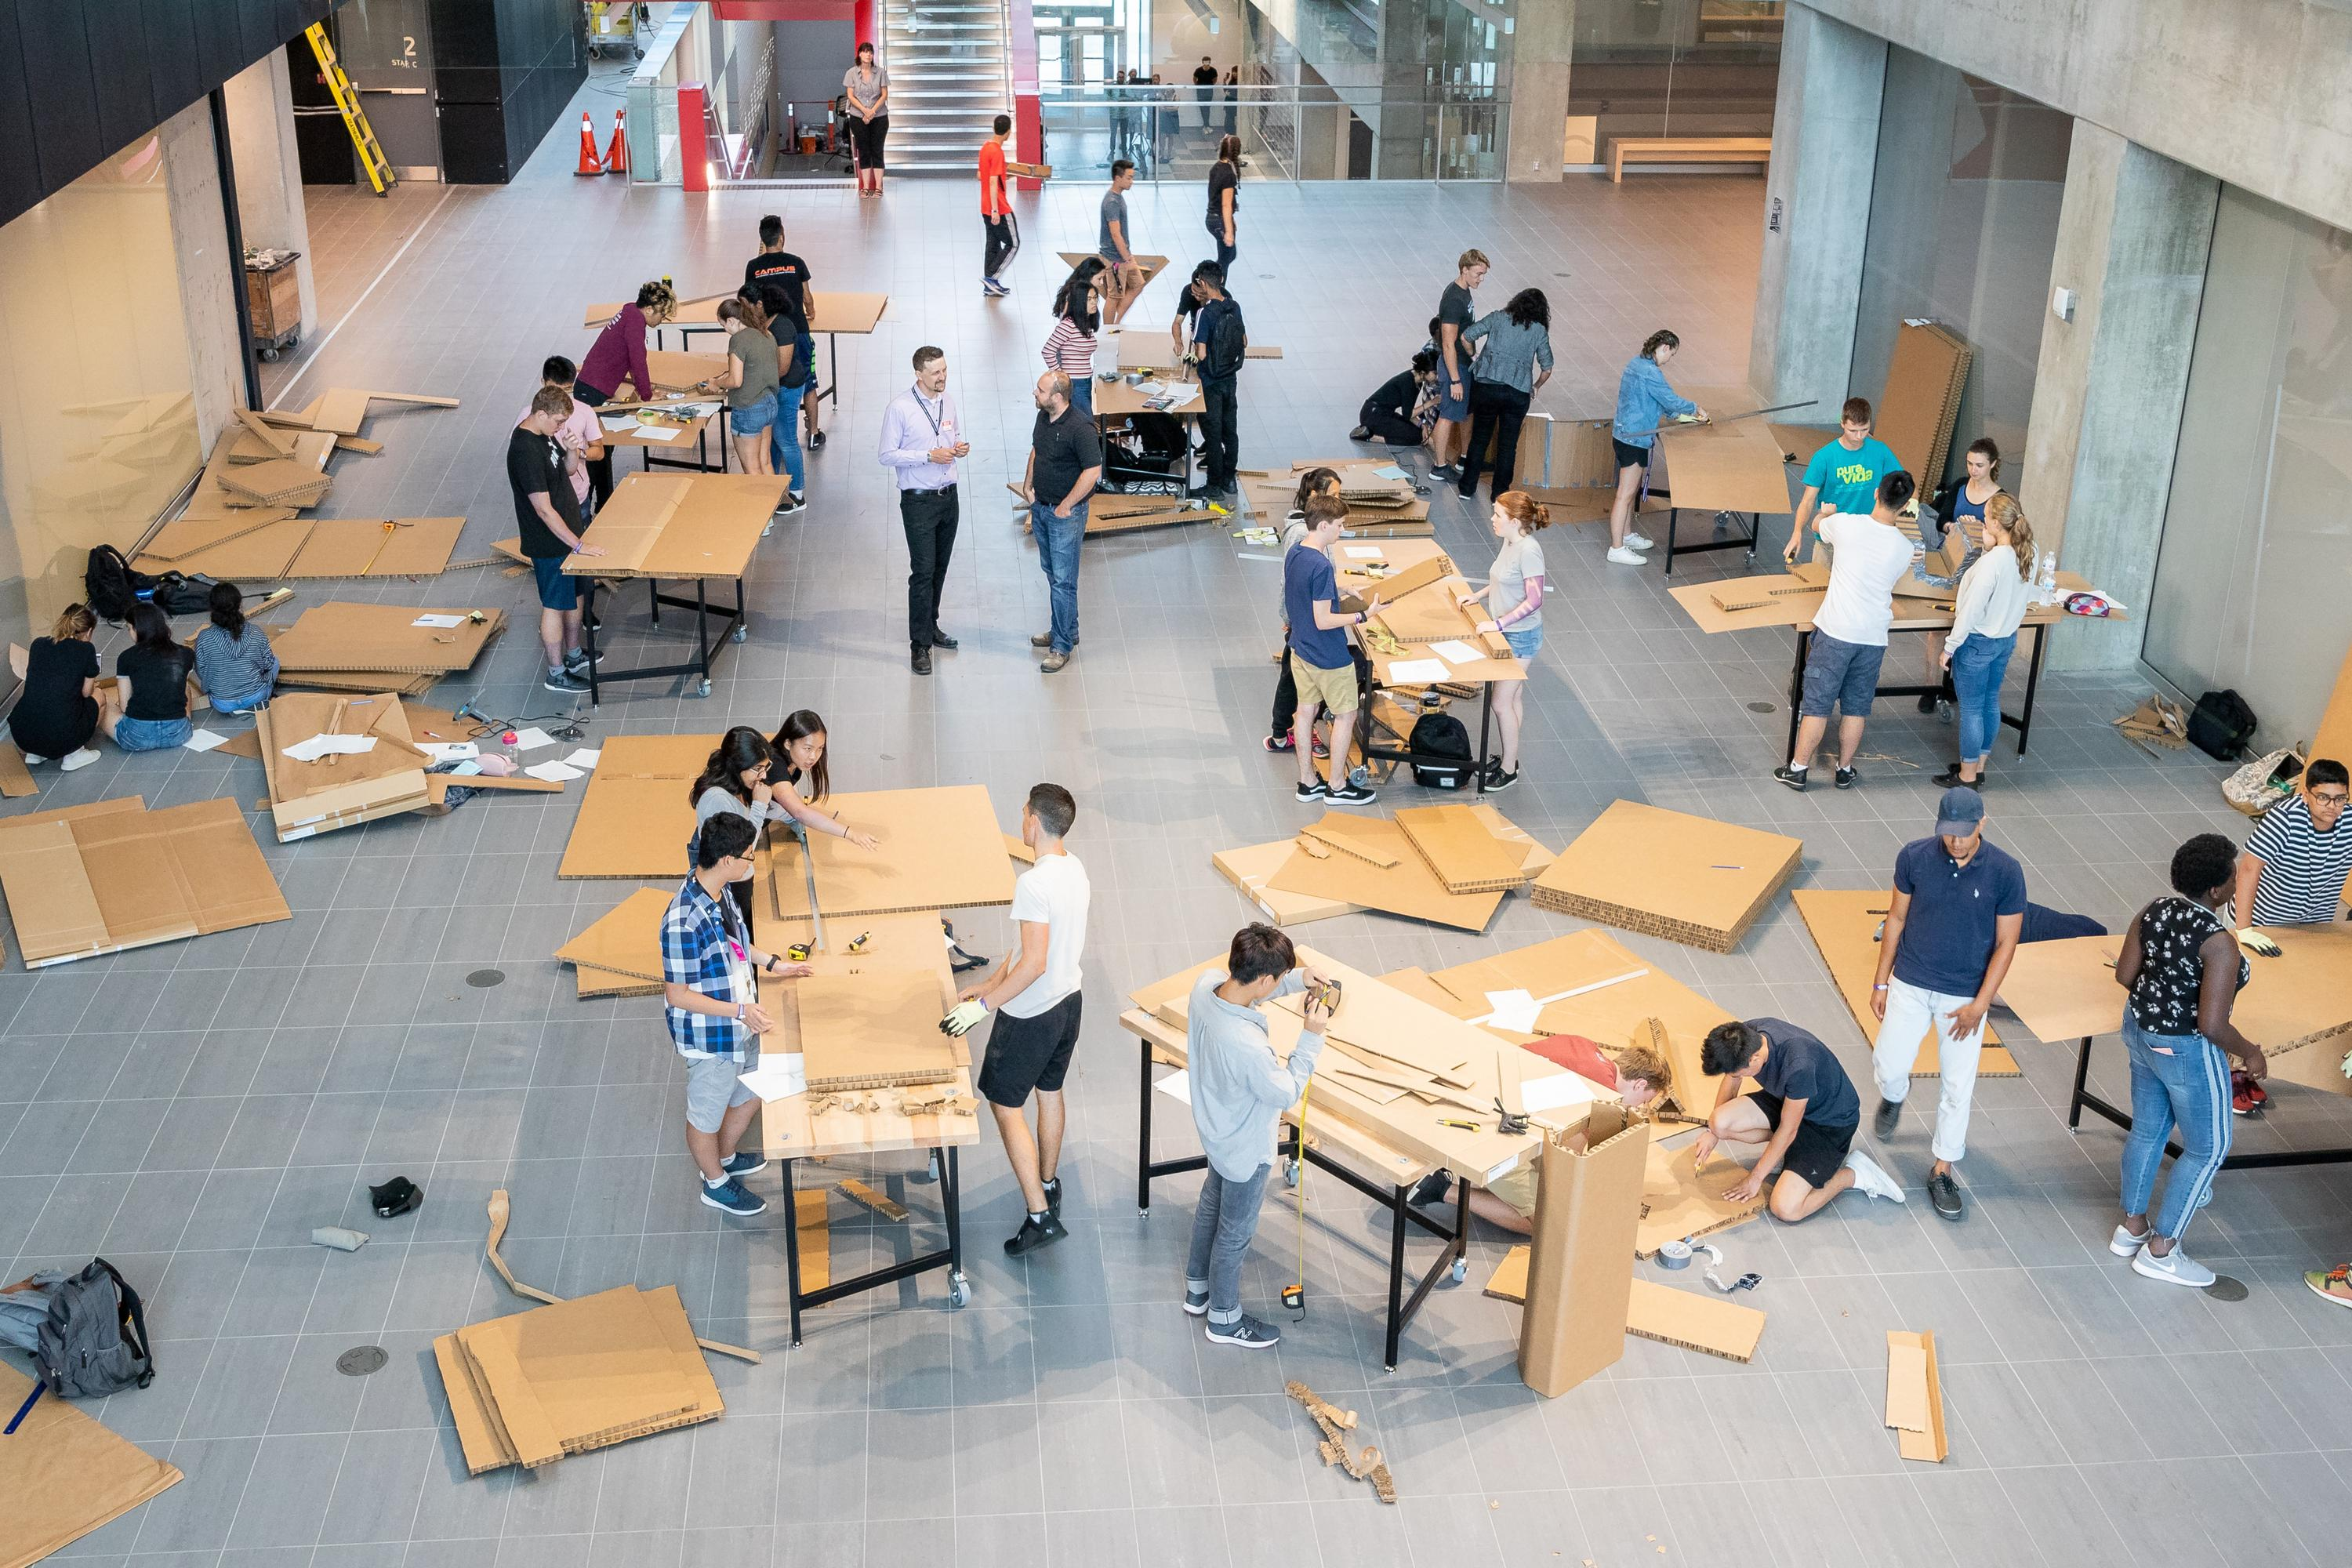 Students working on furniture designs